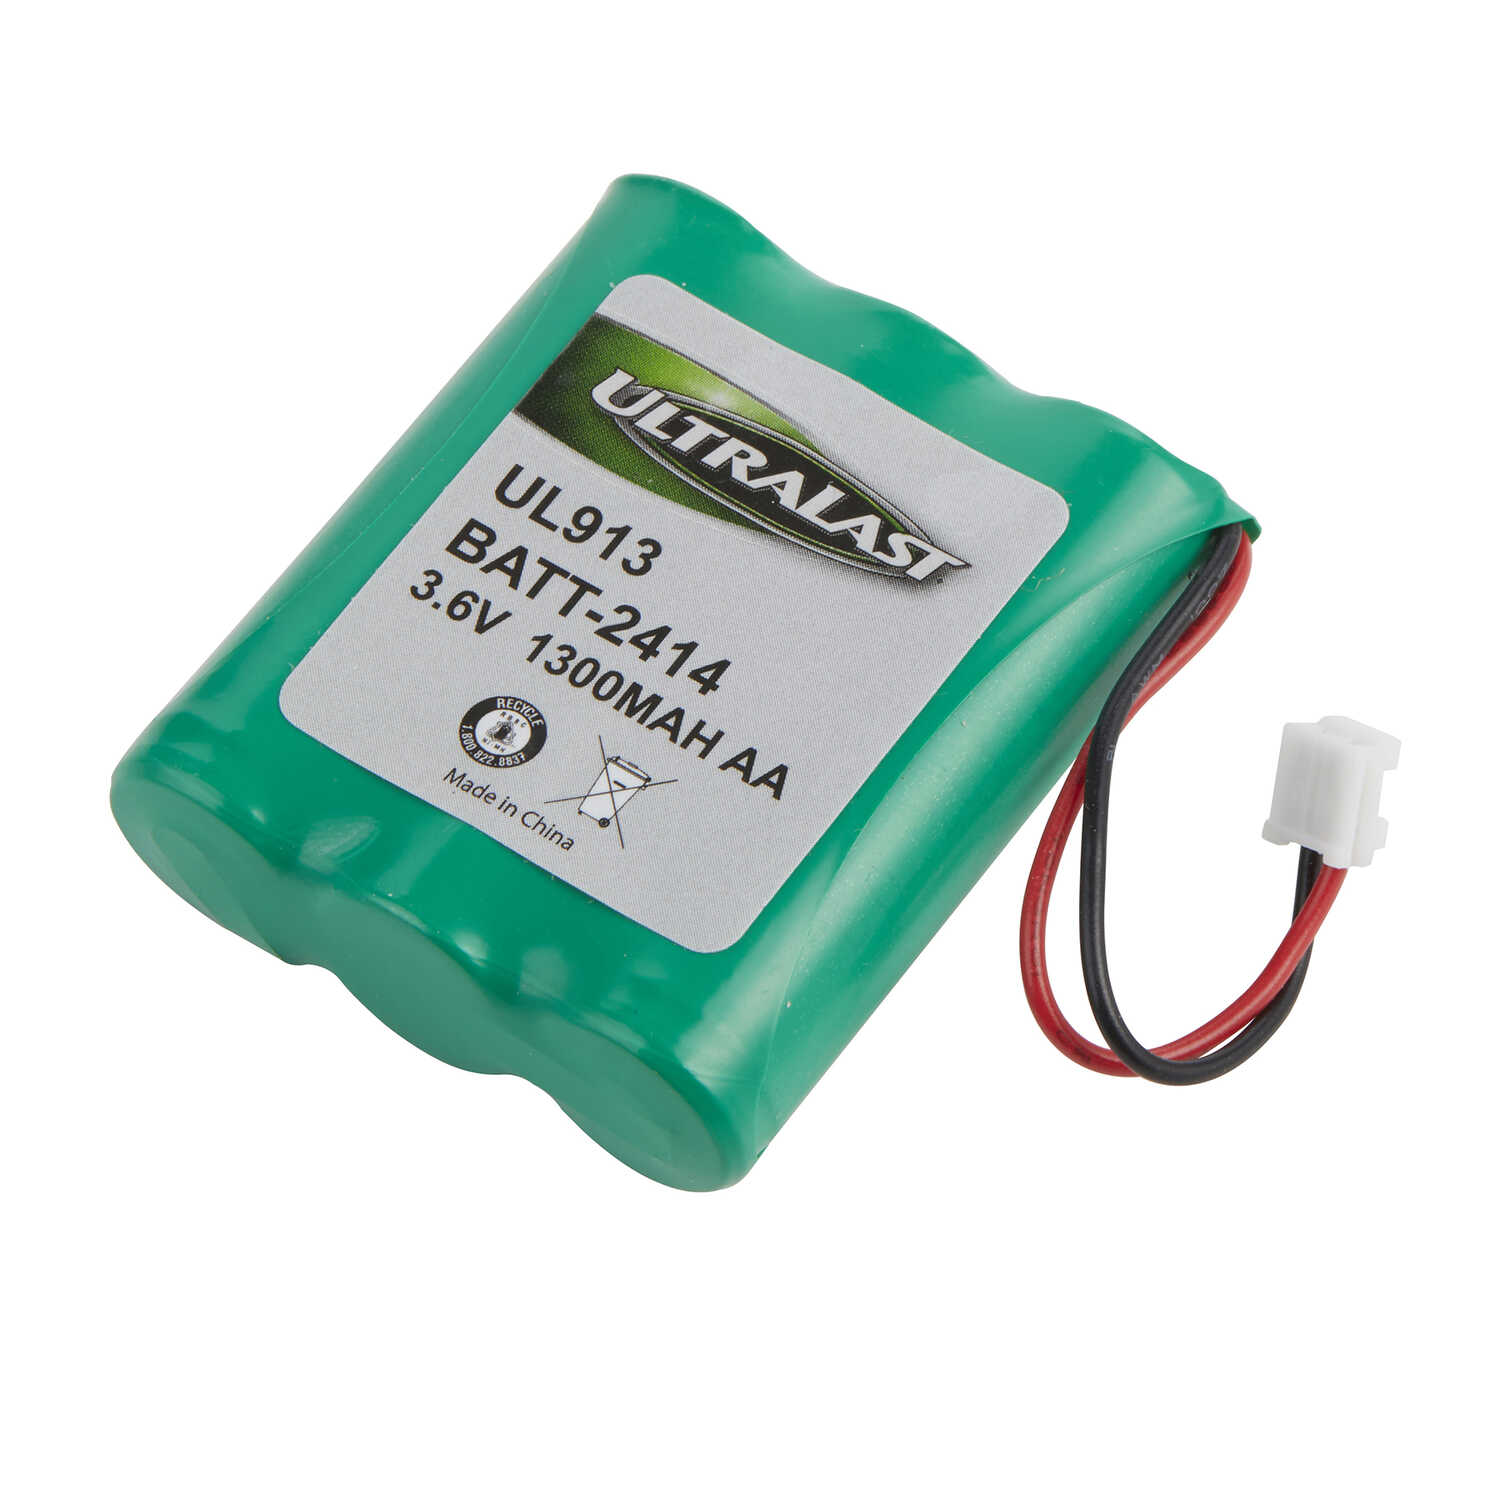 Ultralast  NiMH  AA  3.6 volt Cordless Phone Battery  BATT-2414  1 pk